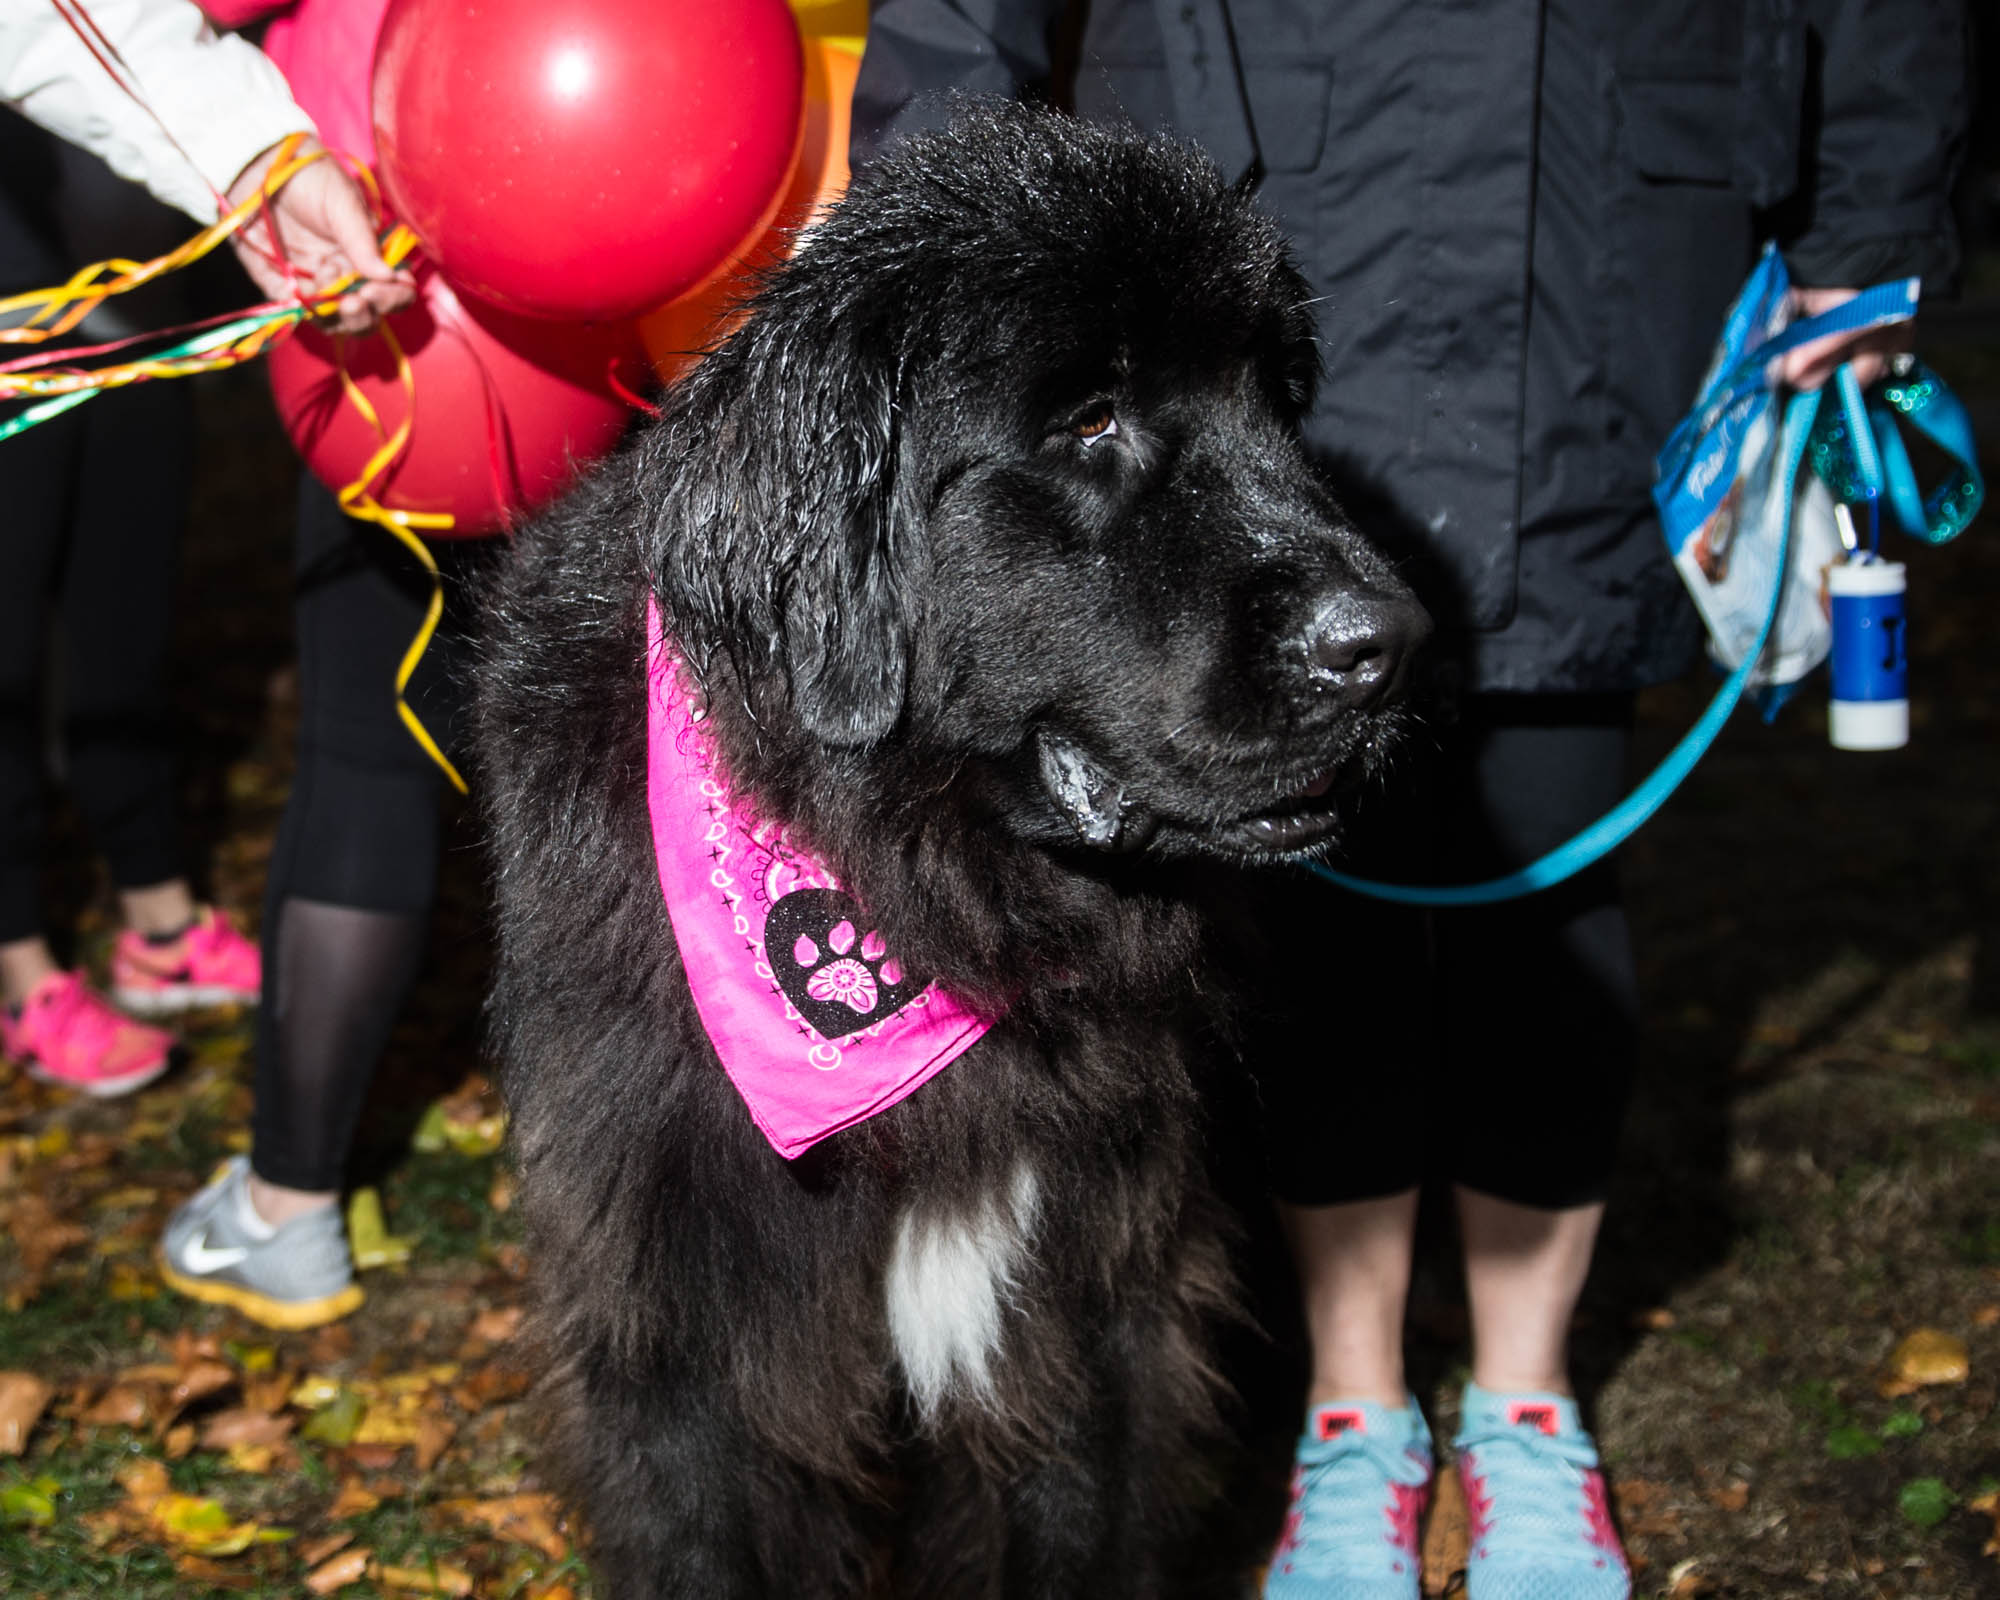 Glow In The Park brought out scores of decked out doggies and their humans to Green Lake for a lap around the park. The rain most certainly didn't stop the dogs from hitting the ground in grand fashion last night in support of the Humane Society's Disaster and Life-Saver Rescue Funds. Click on for cobwebs, pumpkins and Marvel inspired get ups galore. (Image: Chona Kasinger / Seattle Refined)